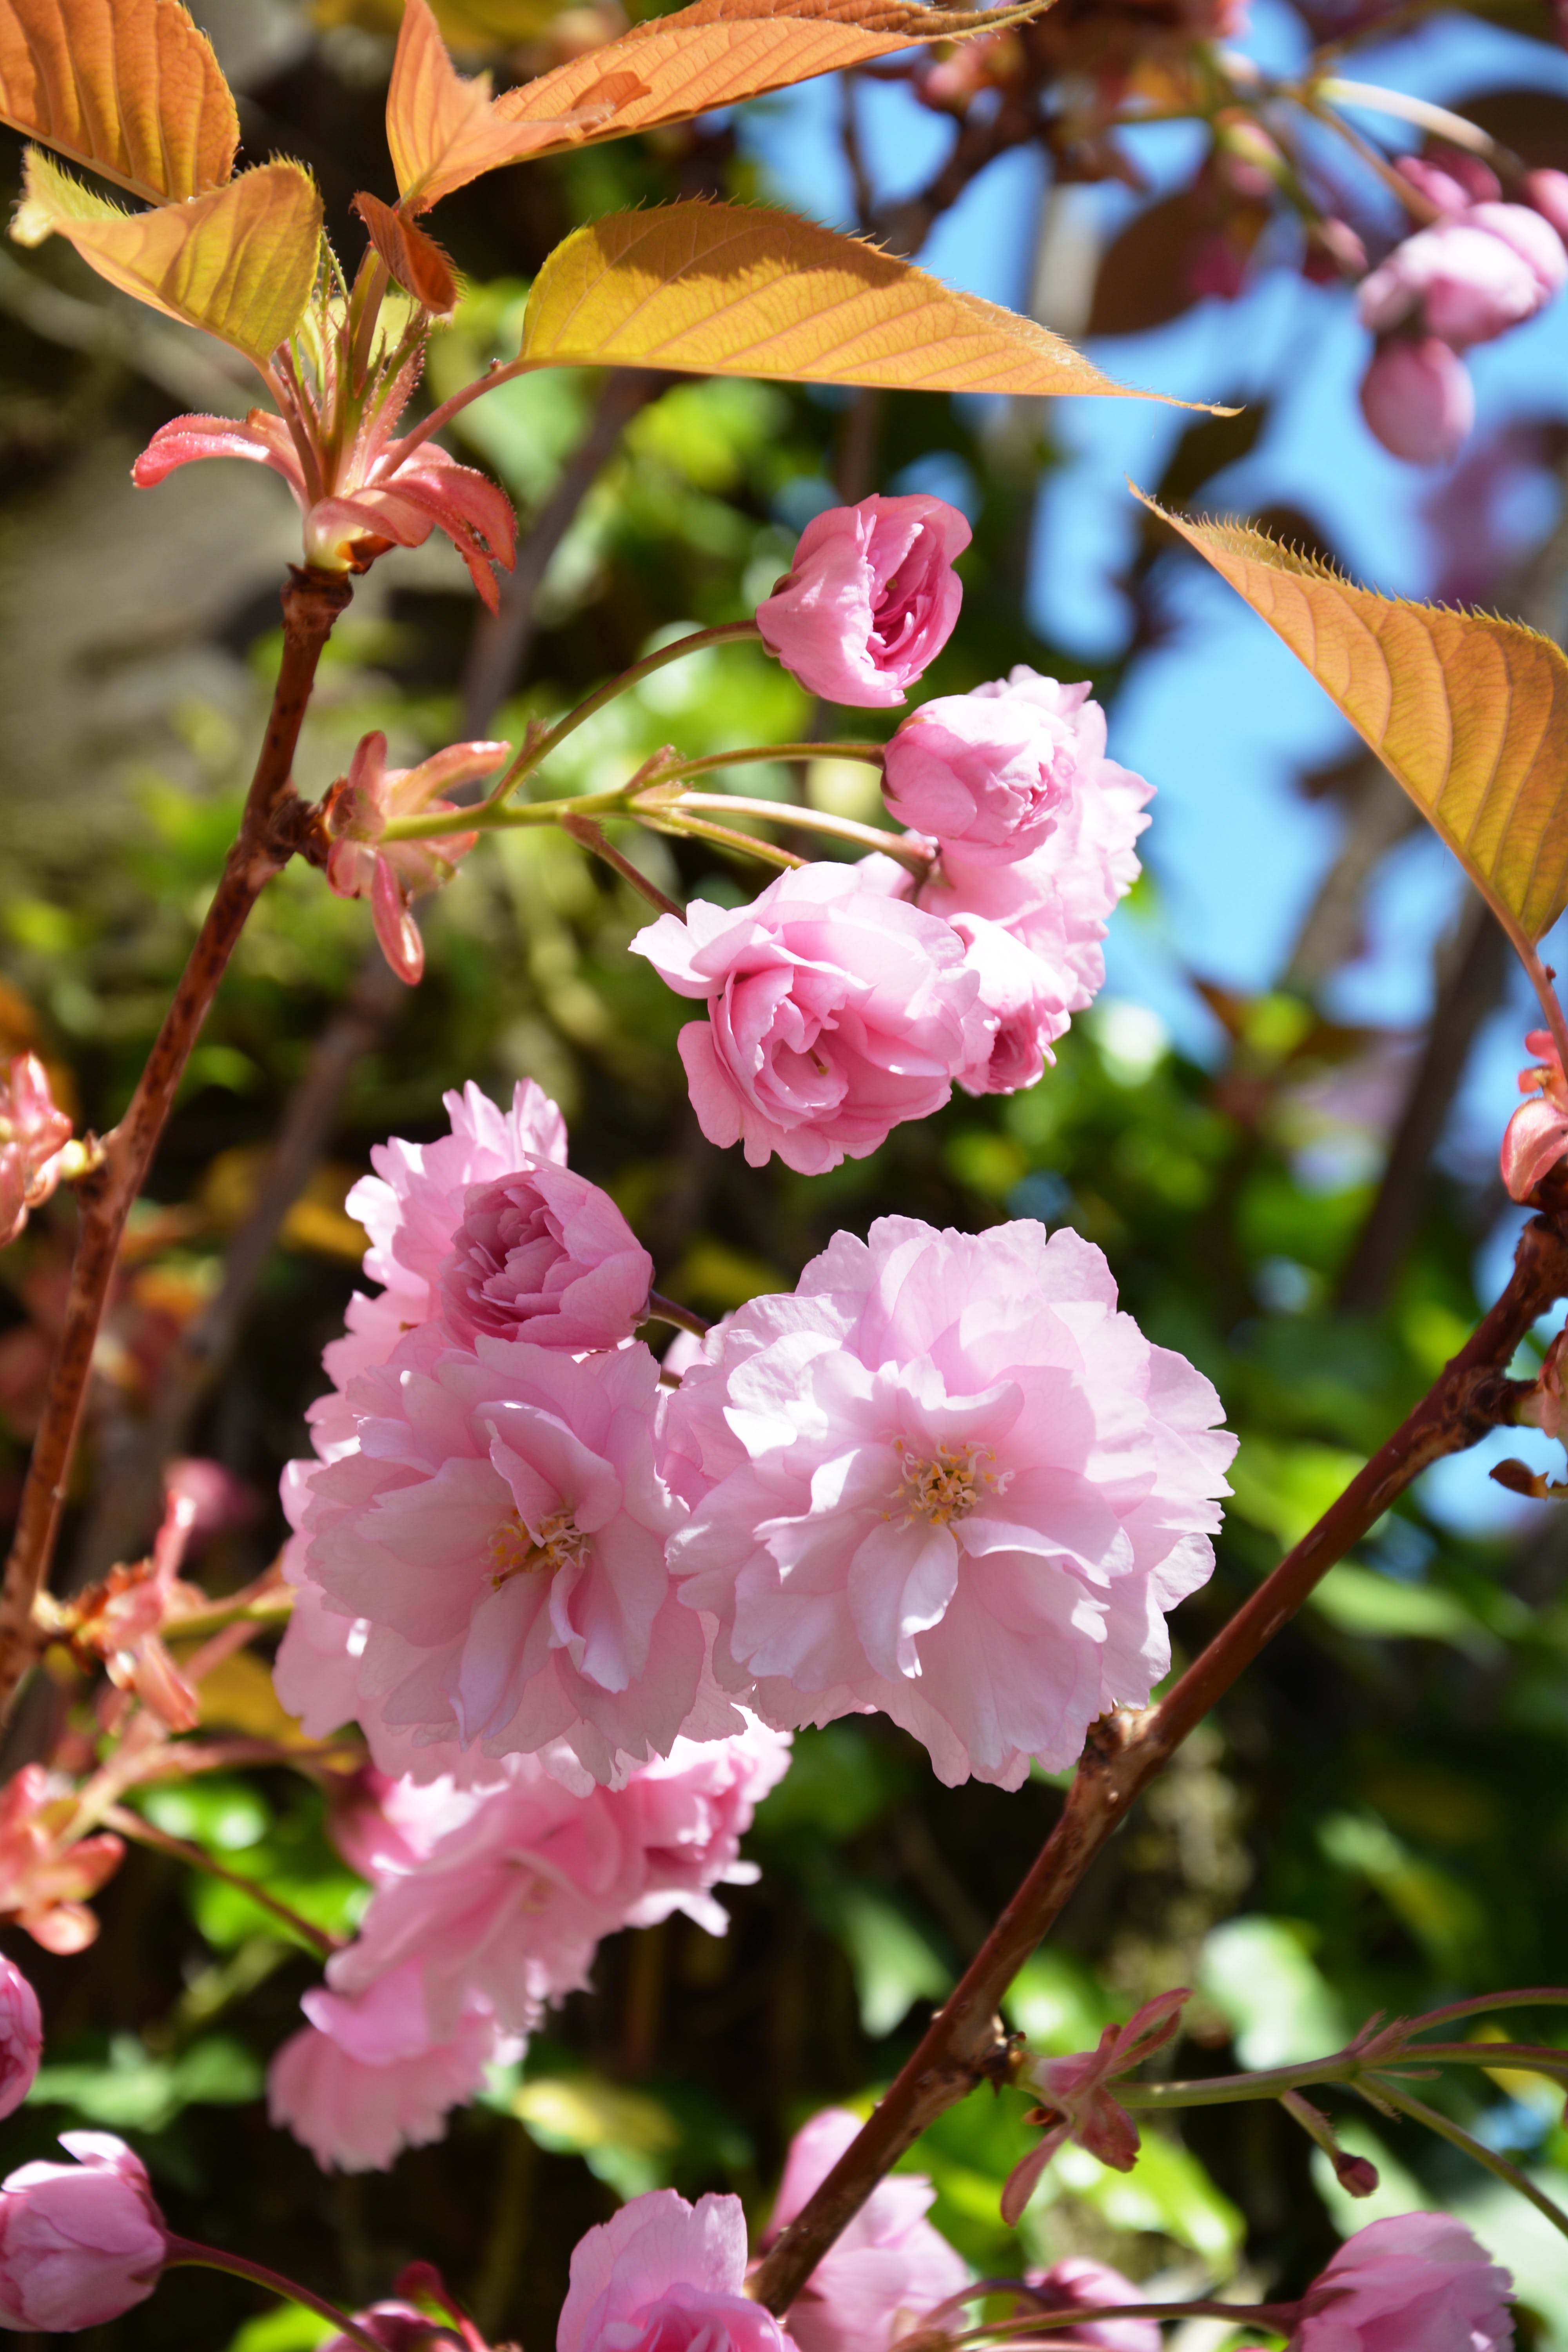 Free stock photo of blooming tree, blossoming, blossoms, botanic garden